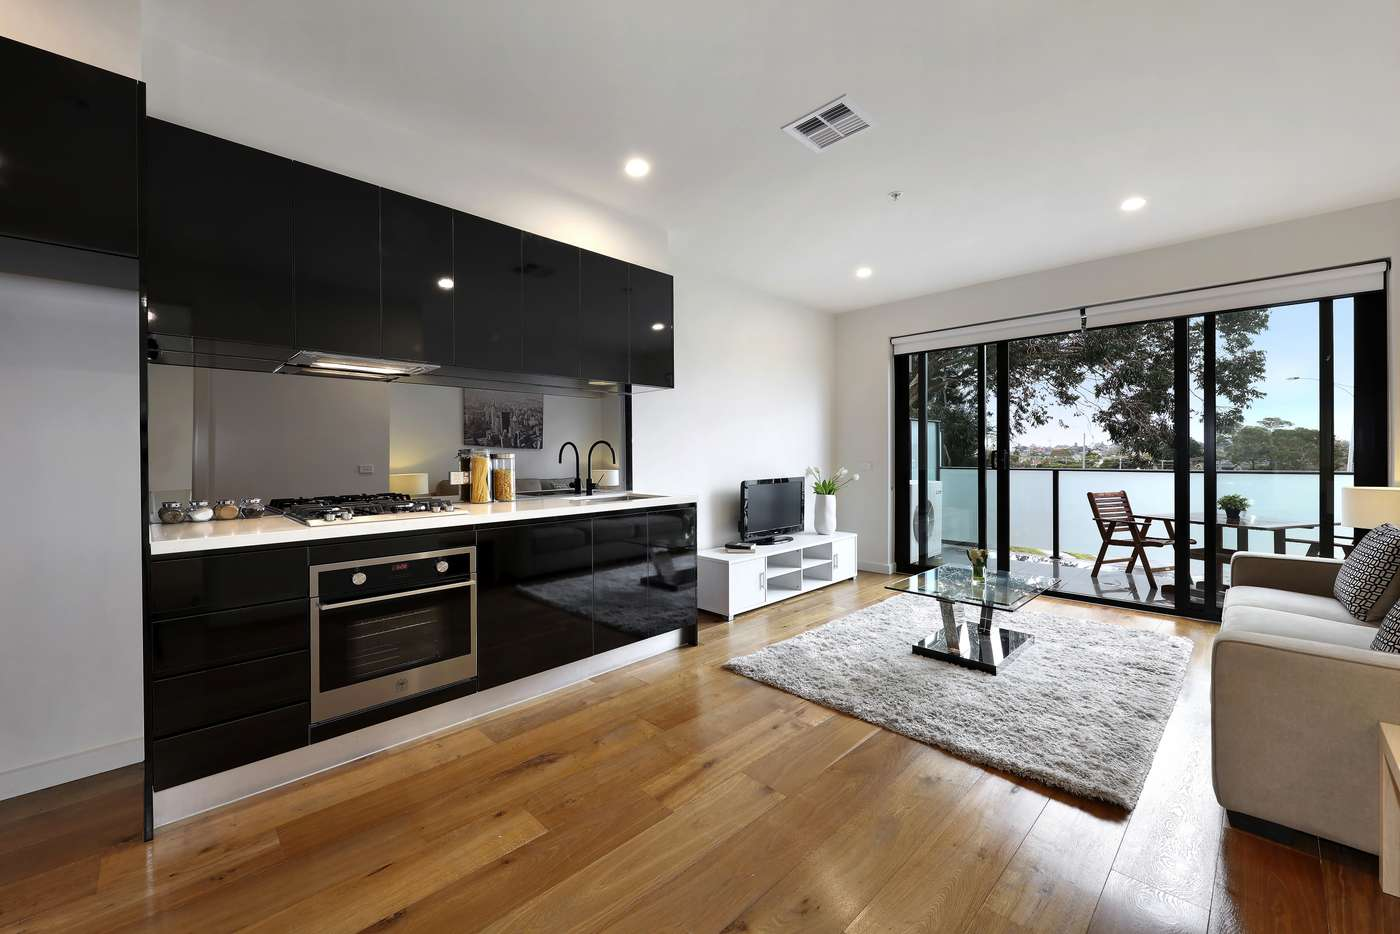 Main view of Homely apartment listing, Unit 109/7 Cowra St, Brighton VIC 3186